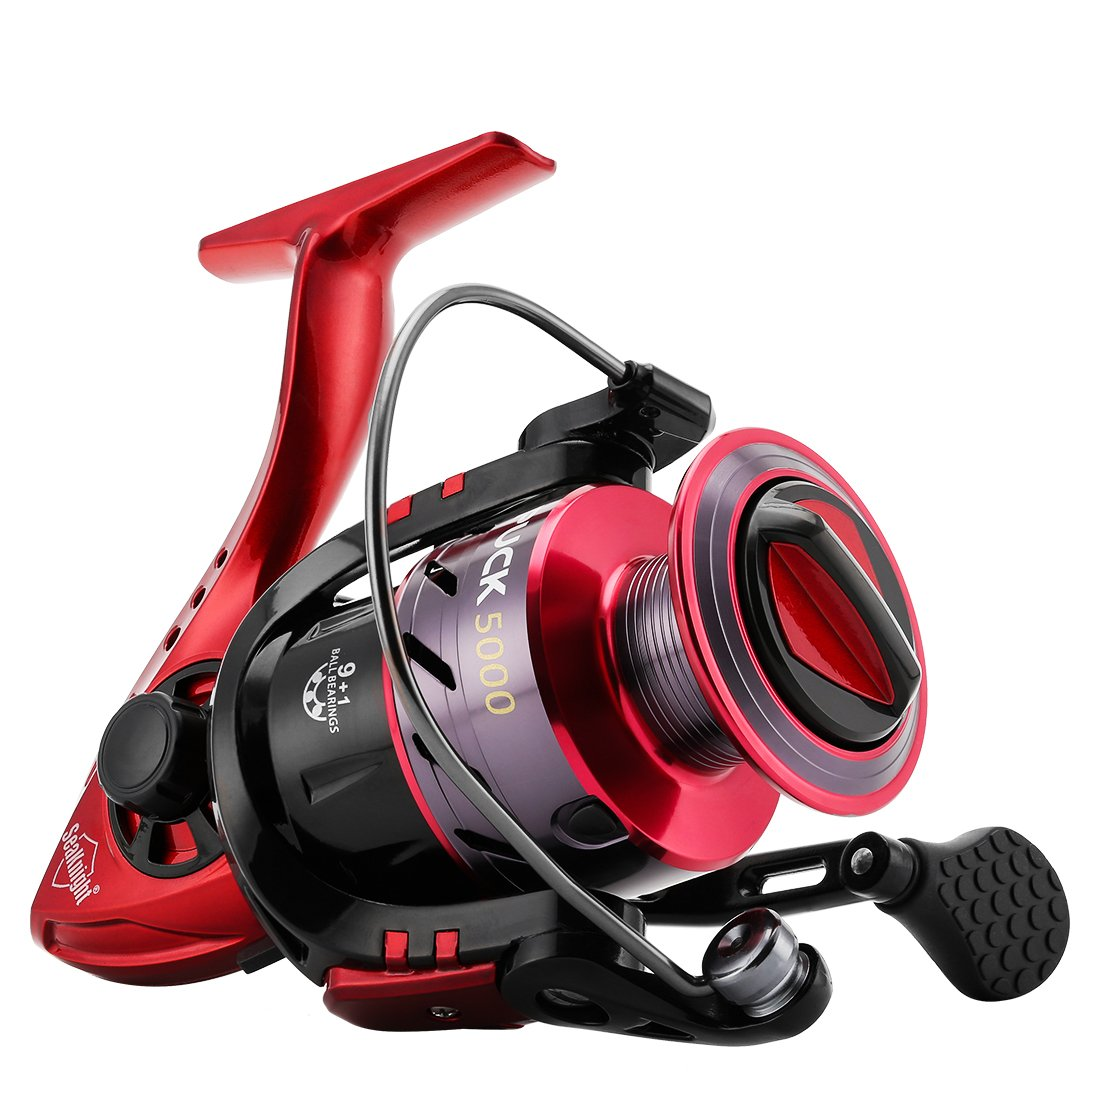 SeaKnight Puck Spinning Reels 9 1 BB 5.2 1 High Speed Light Weight Ultra Smooth Powerful Spinning Fishing Reel